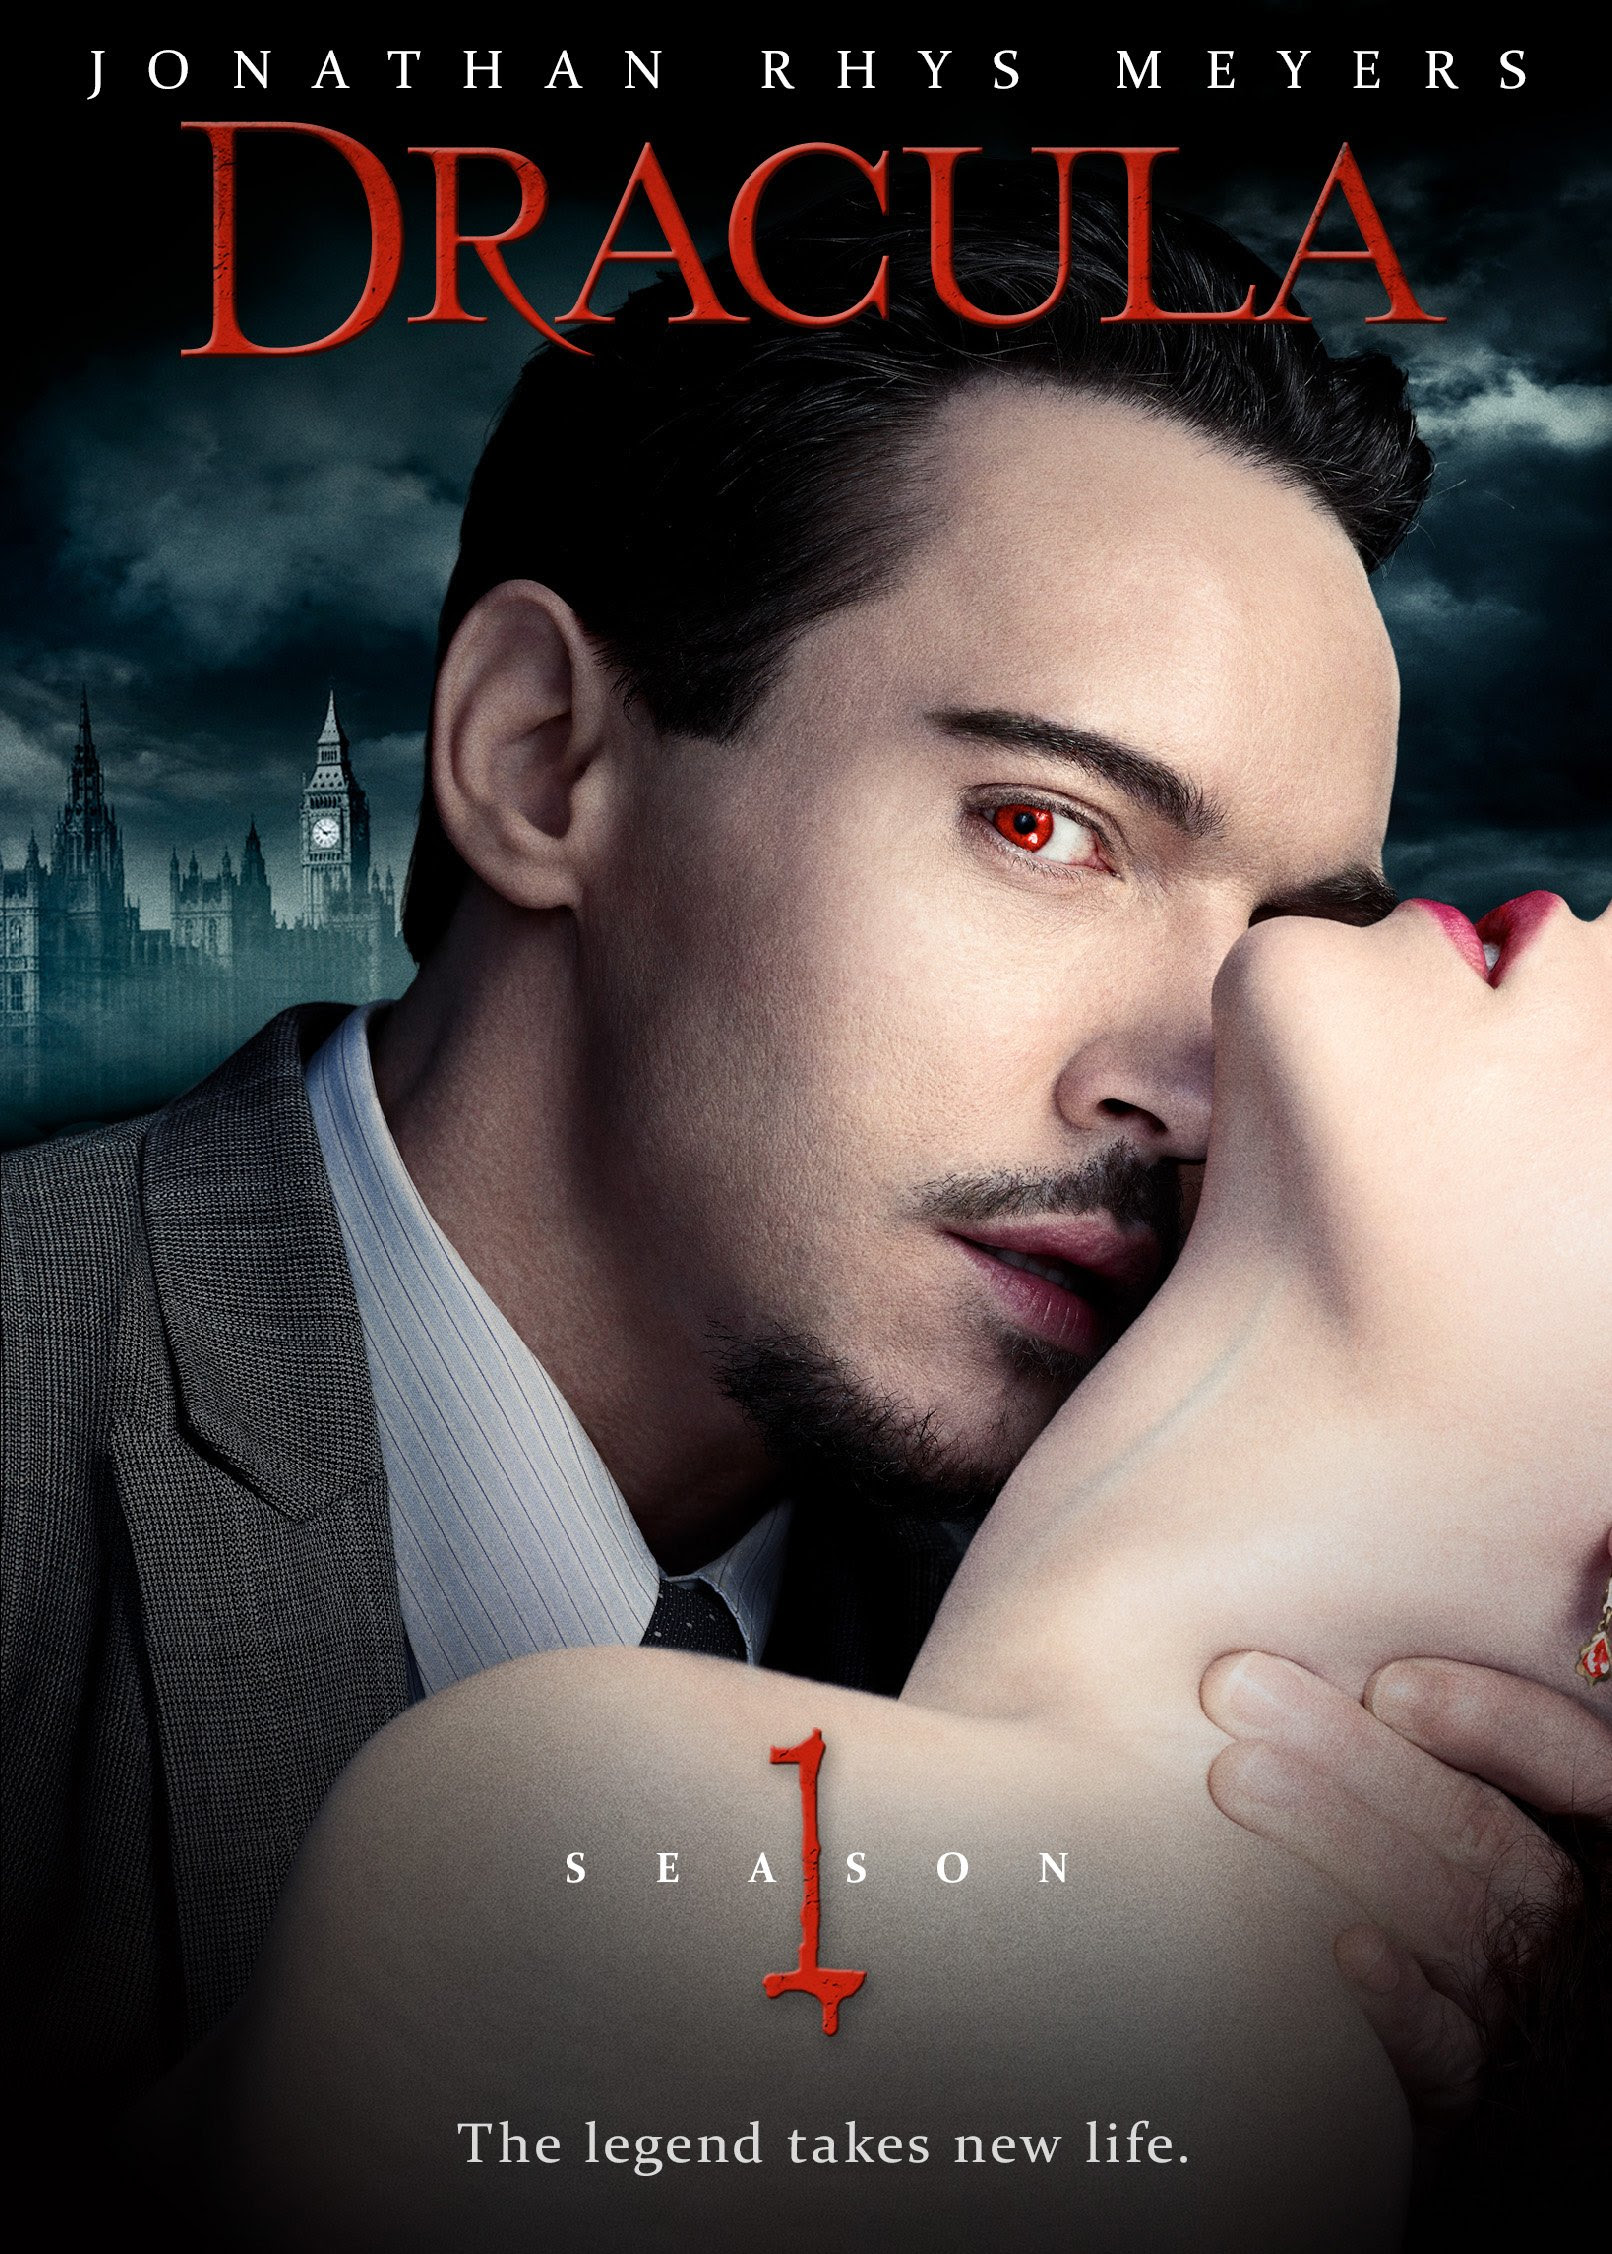 http://www.dvdsreleasedates.com/covers/dracula-season-1-dvd-cover-98.jpg